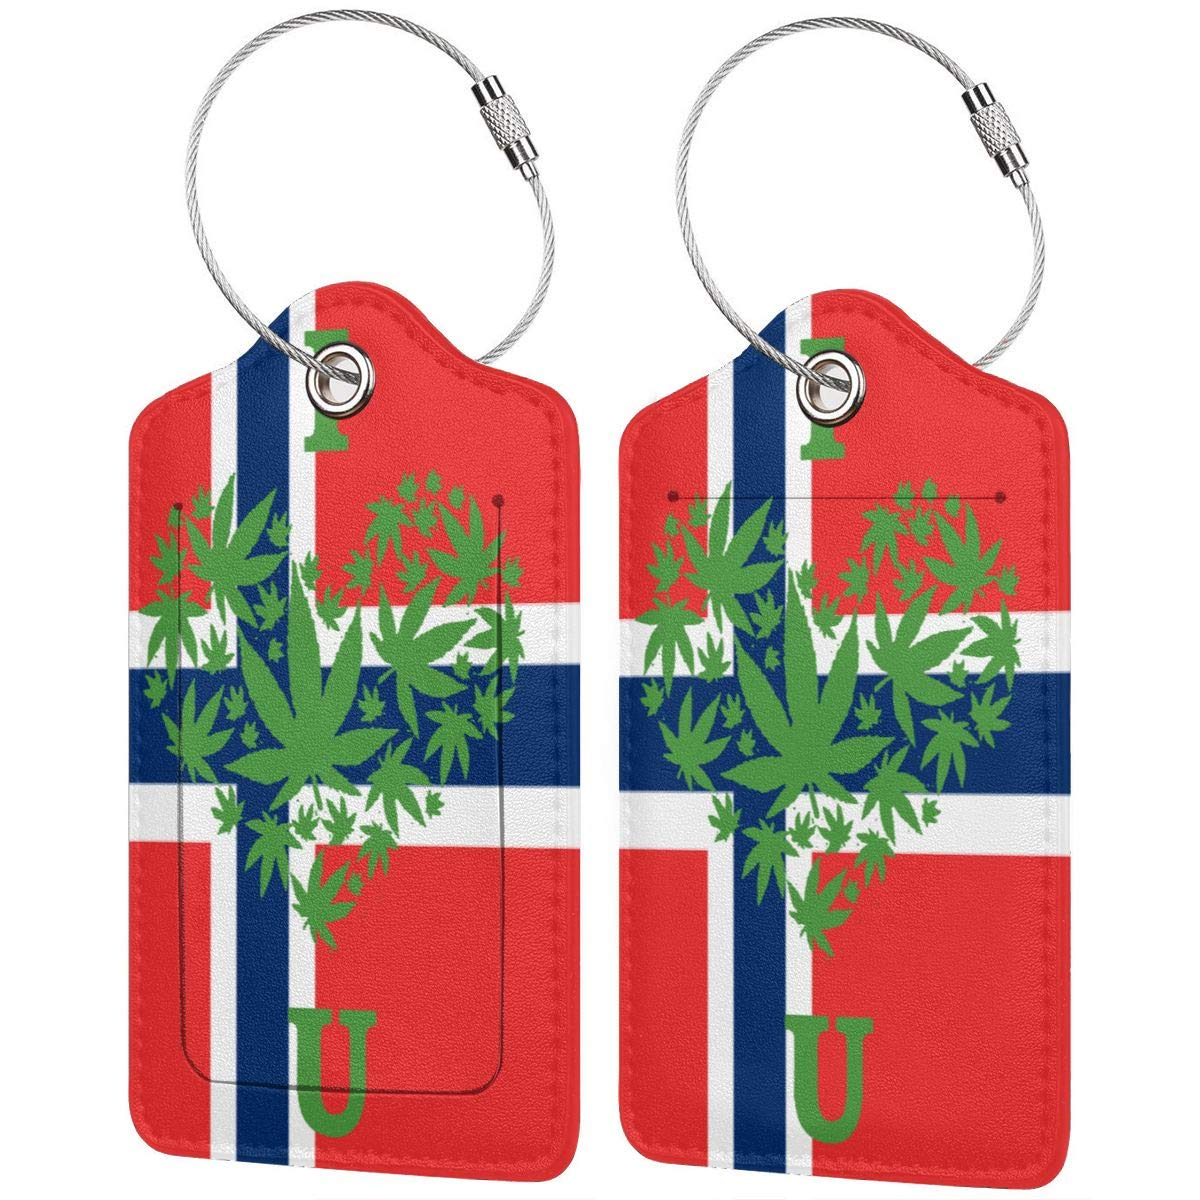 GoldK Norwegian Flag Weed Leather Luggage Tags Baggage Bag Instrument Tag Travel Labels Accessories with Privacy Cover